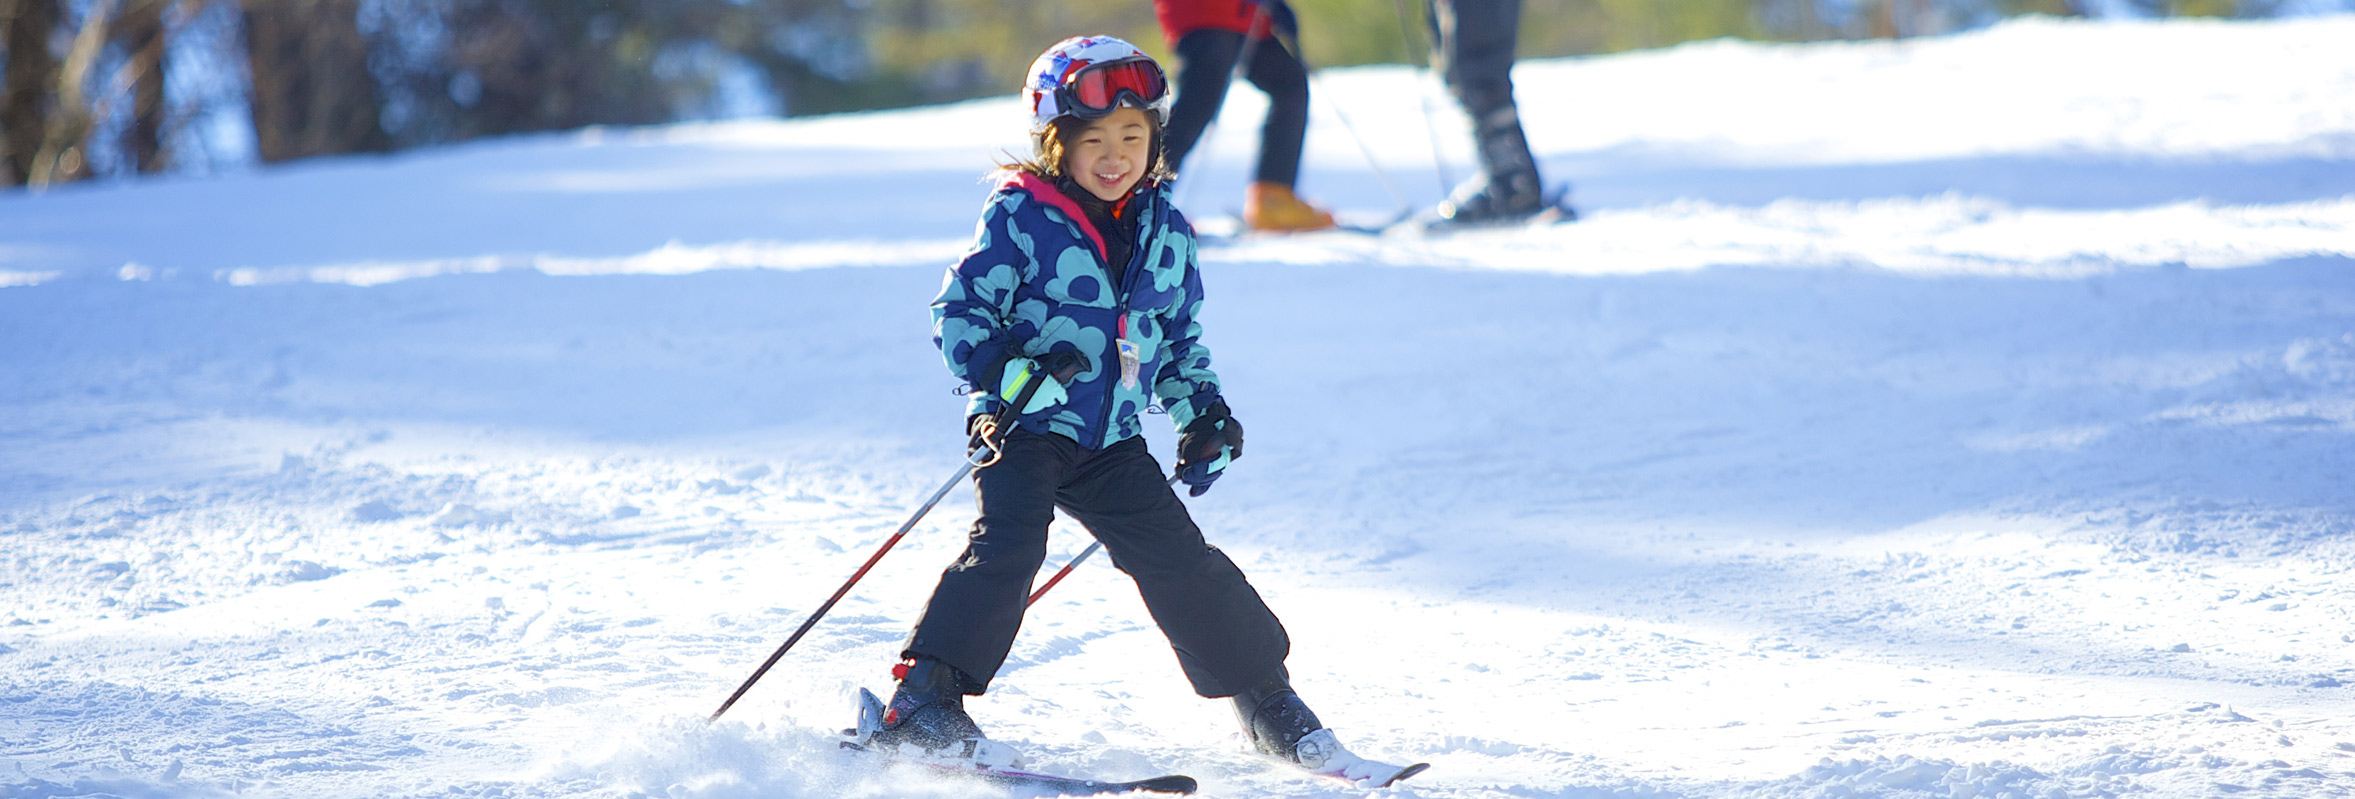 Photo of little girl skiing